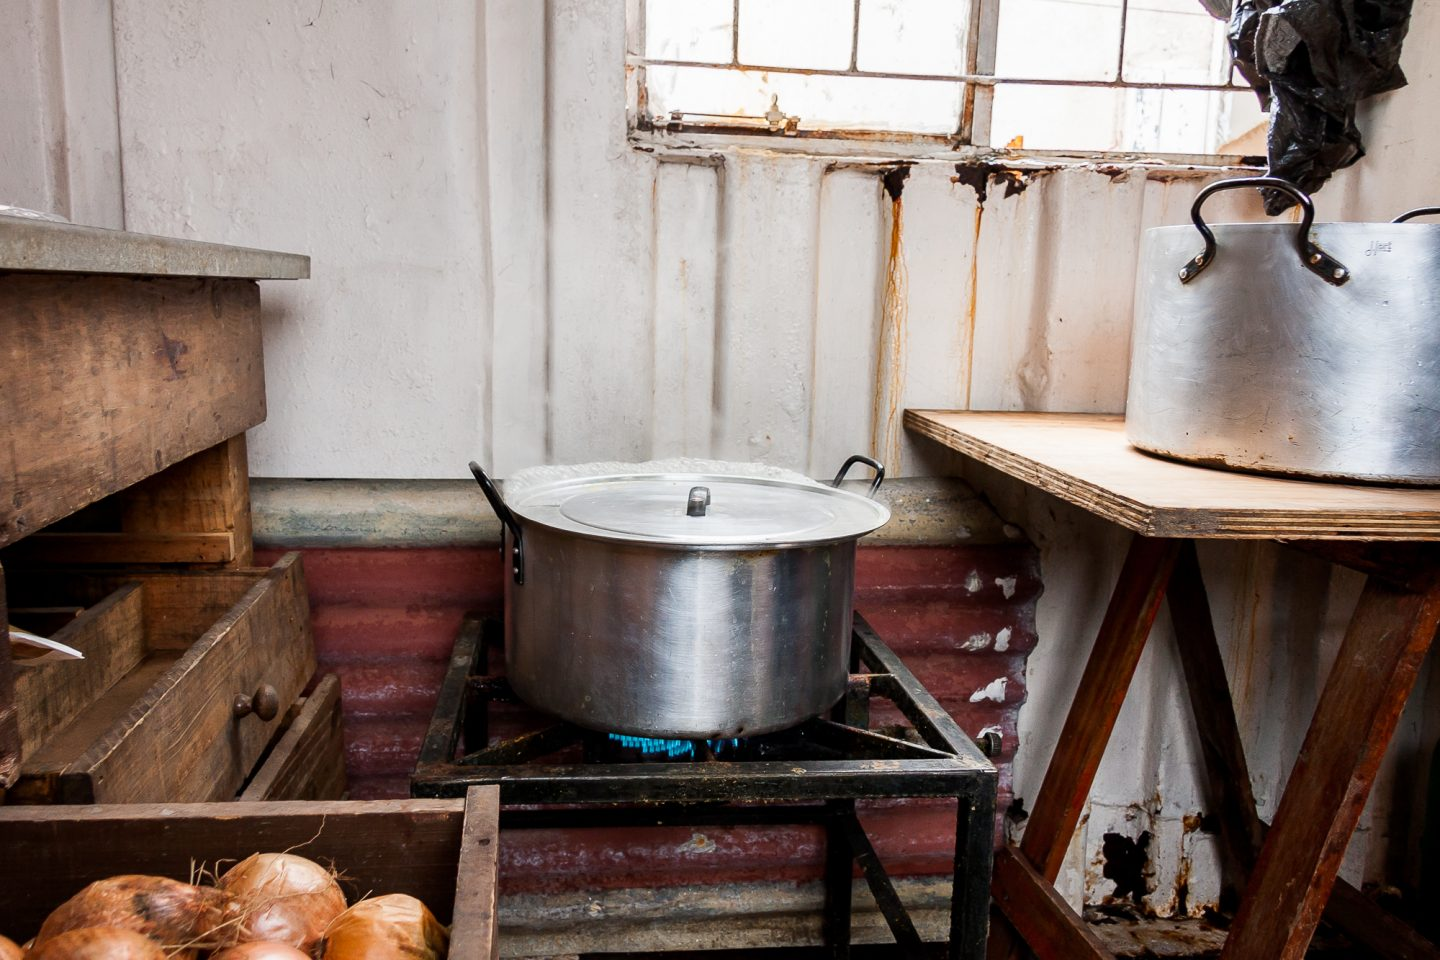 The big pot is on the stove in the container community center kitchen.